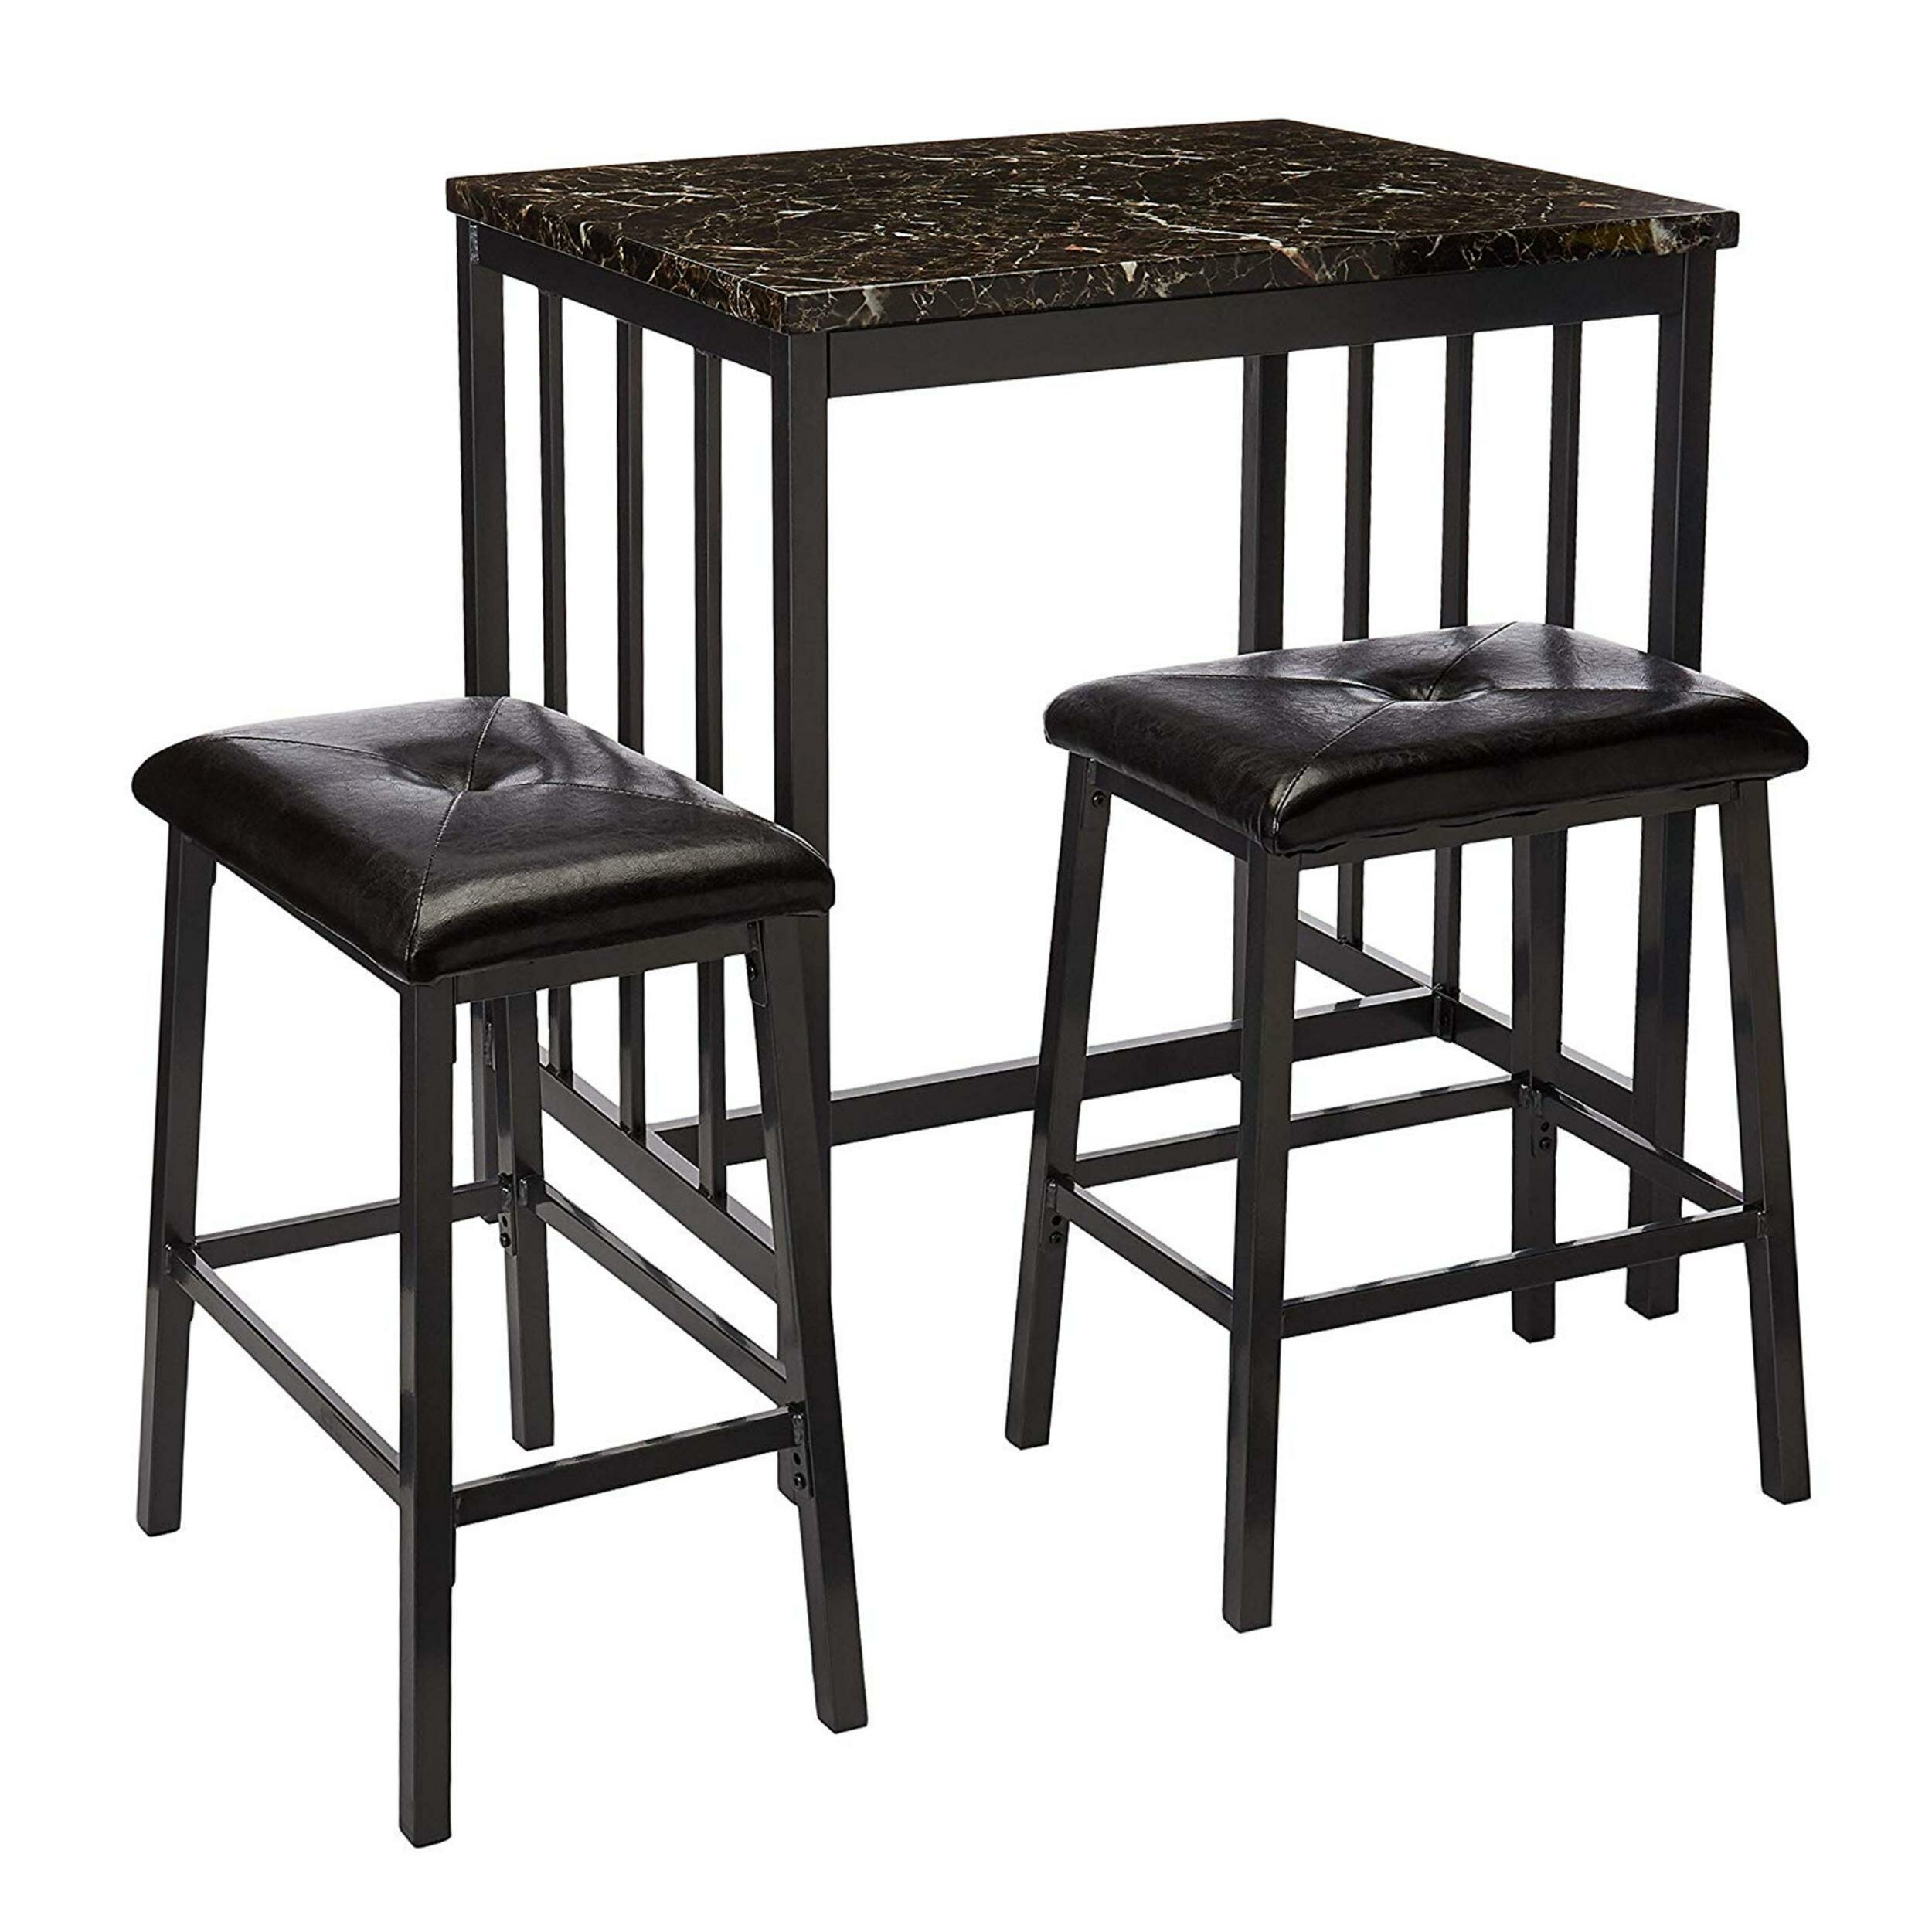 Presson 3 Piece Counter Height Dining Set With Best And Newest Presson 3 Piece Counter Height Dining Sets (Photo 1 of 20)